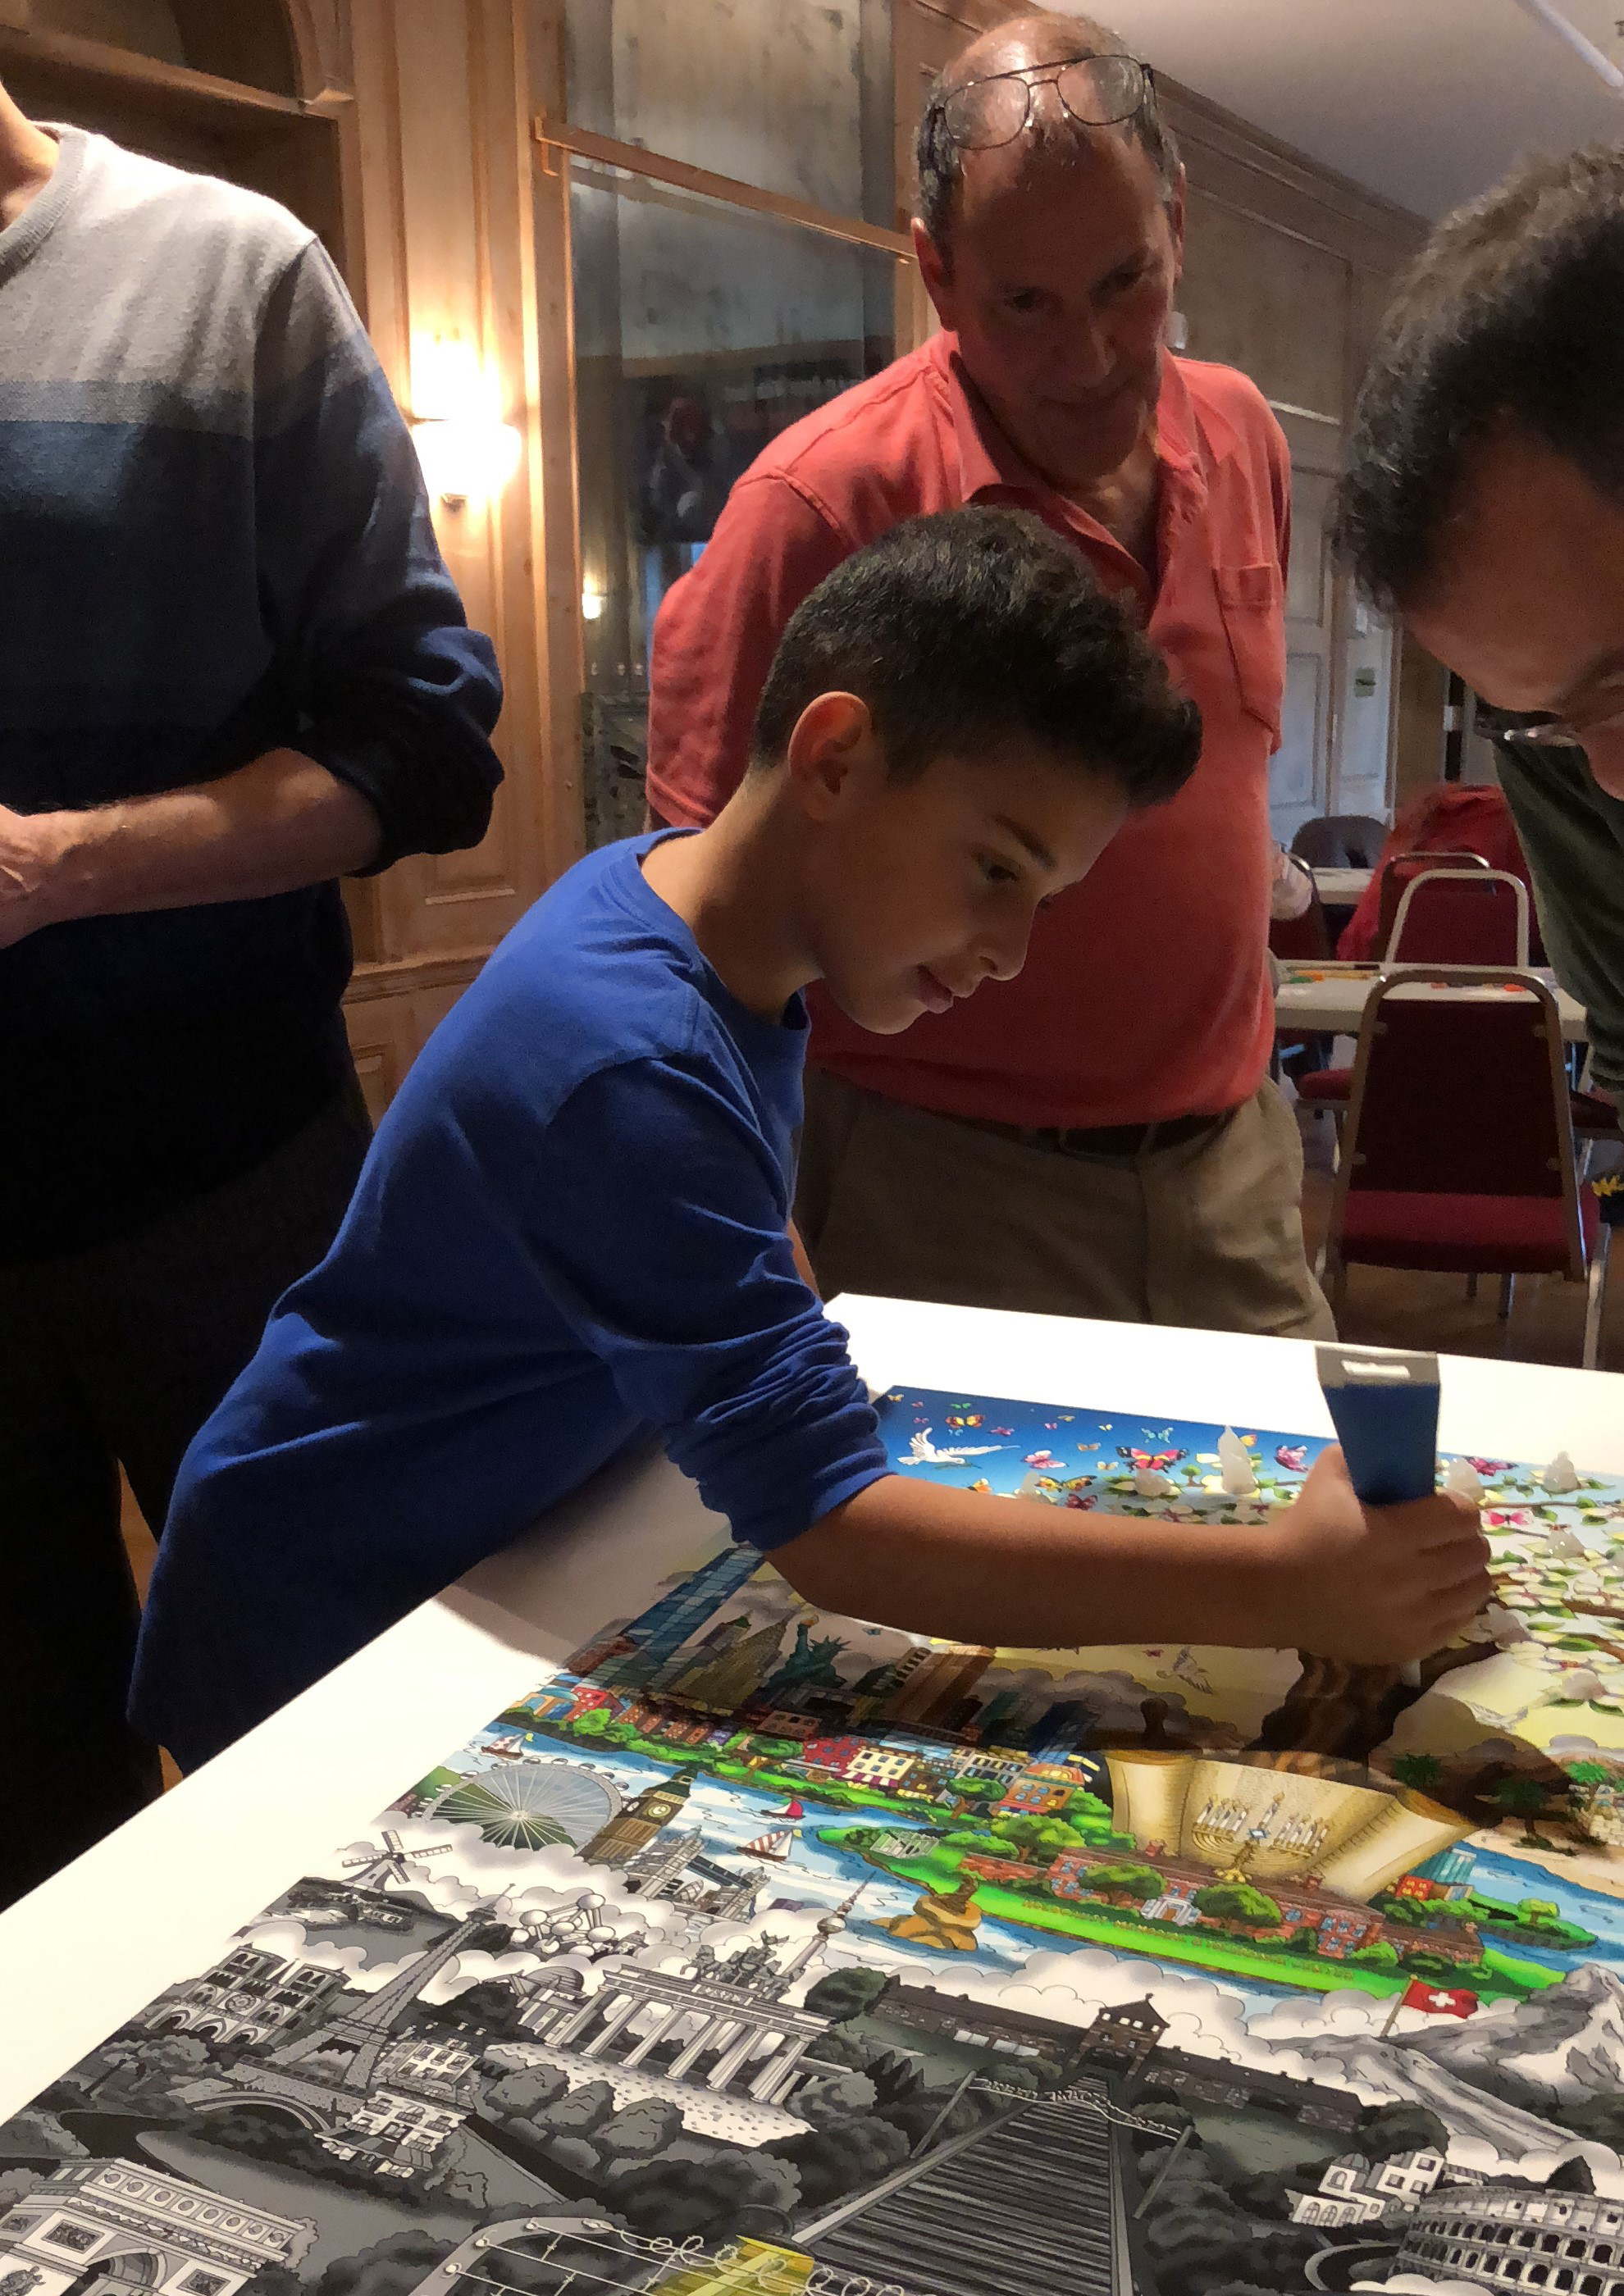 Young boy in a blue shirt adding glue dots to create 3d pop art